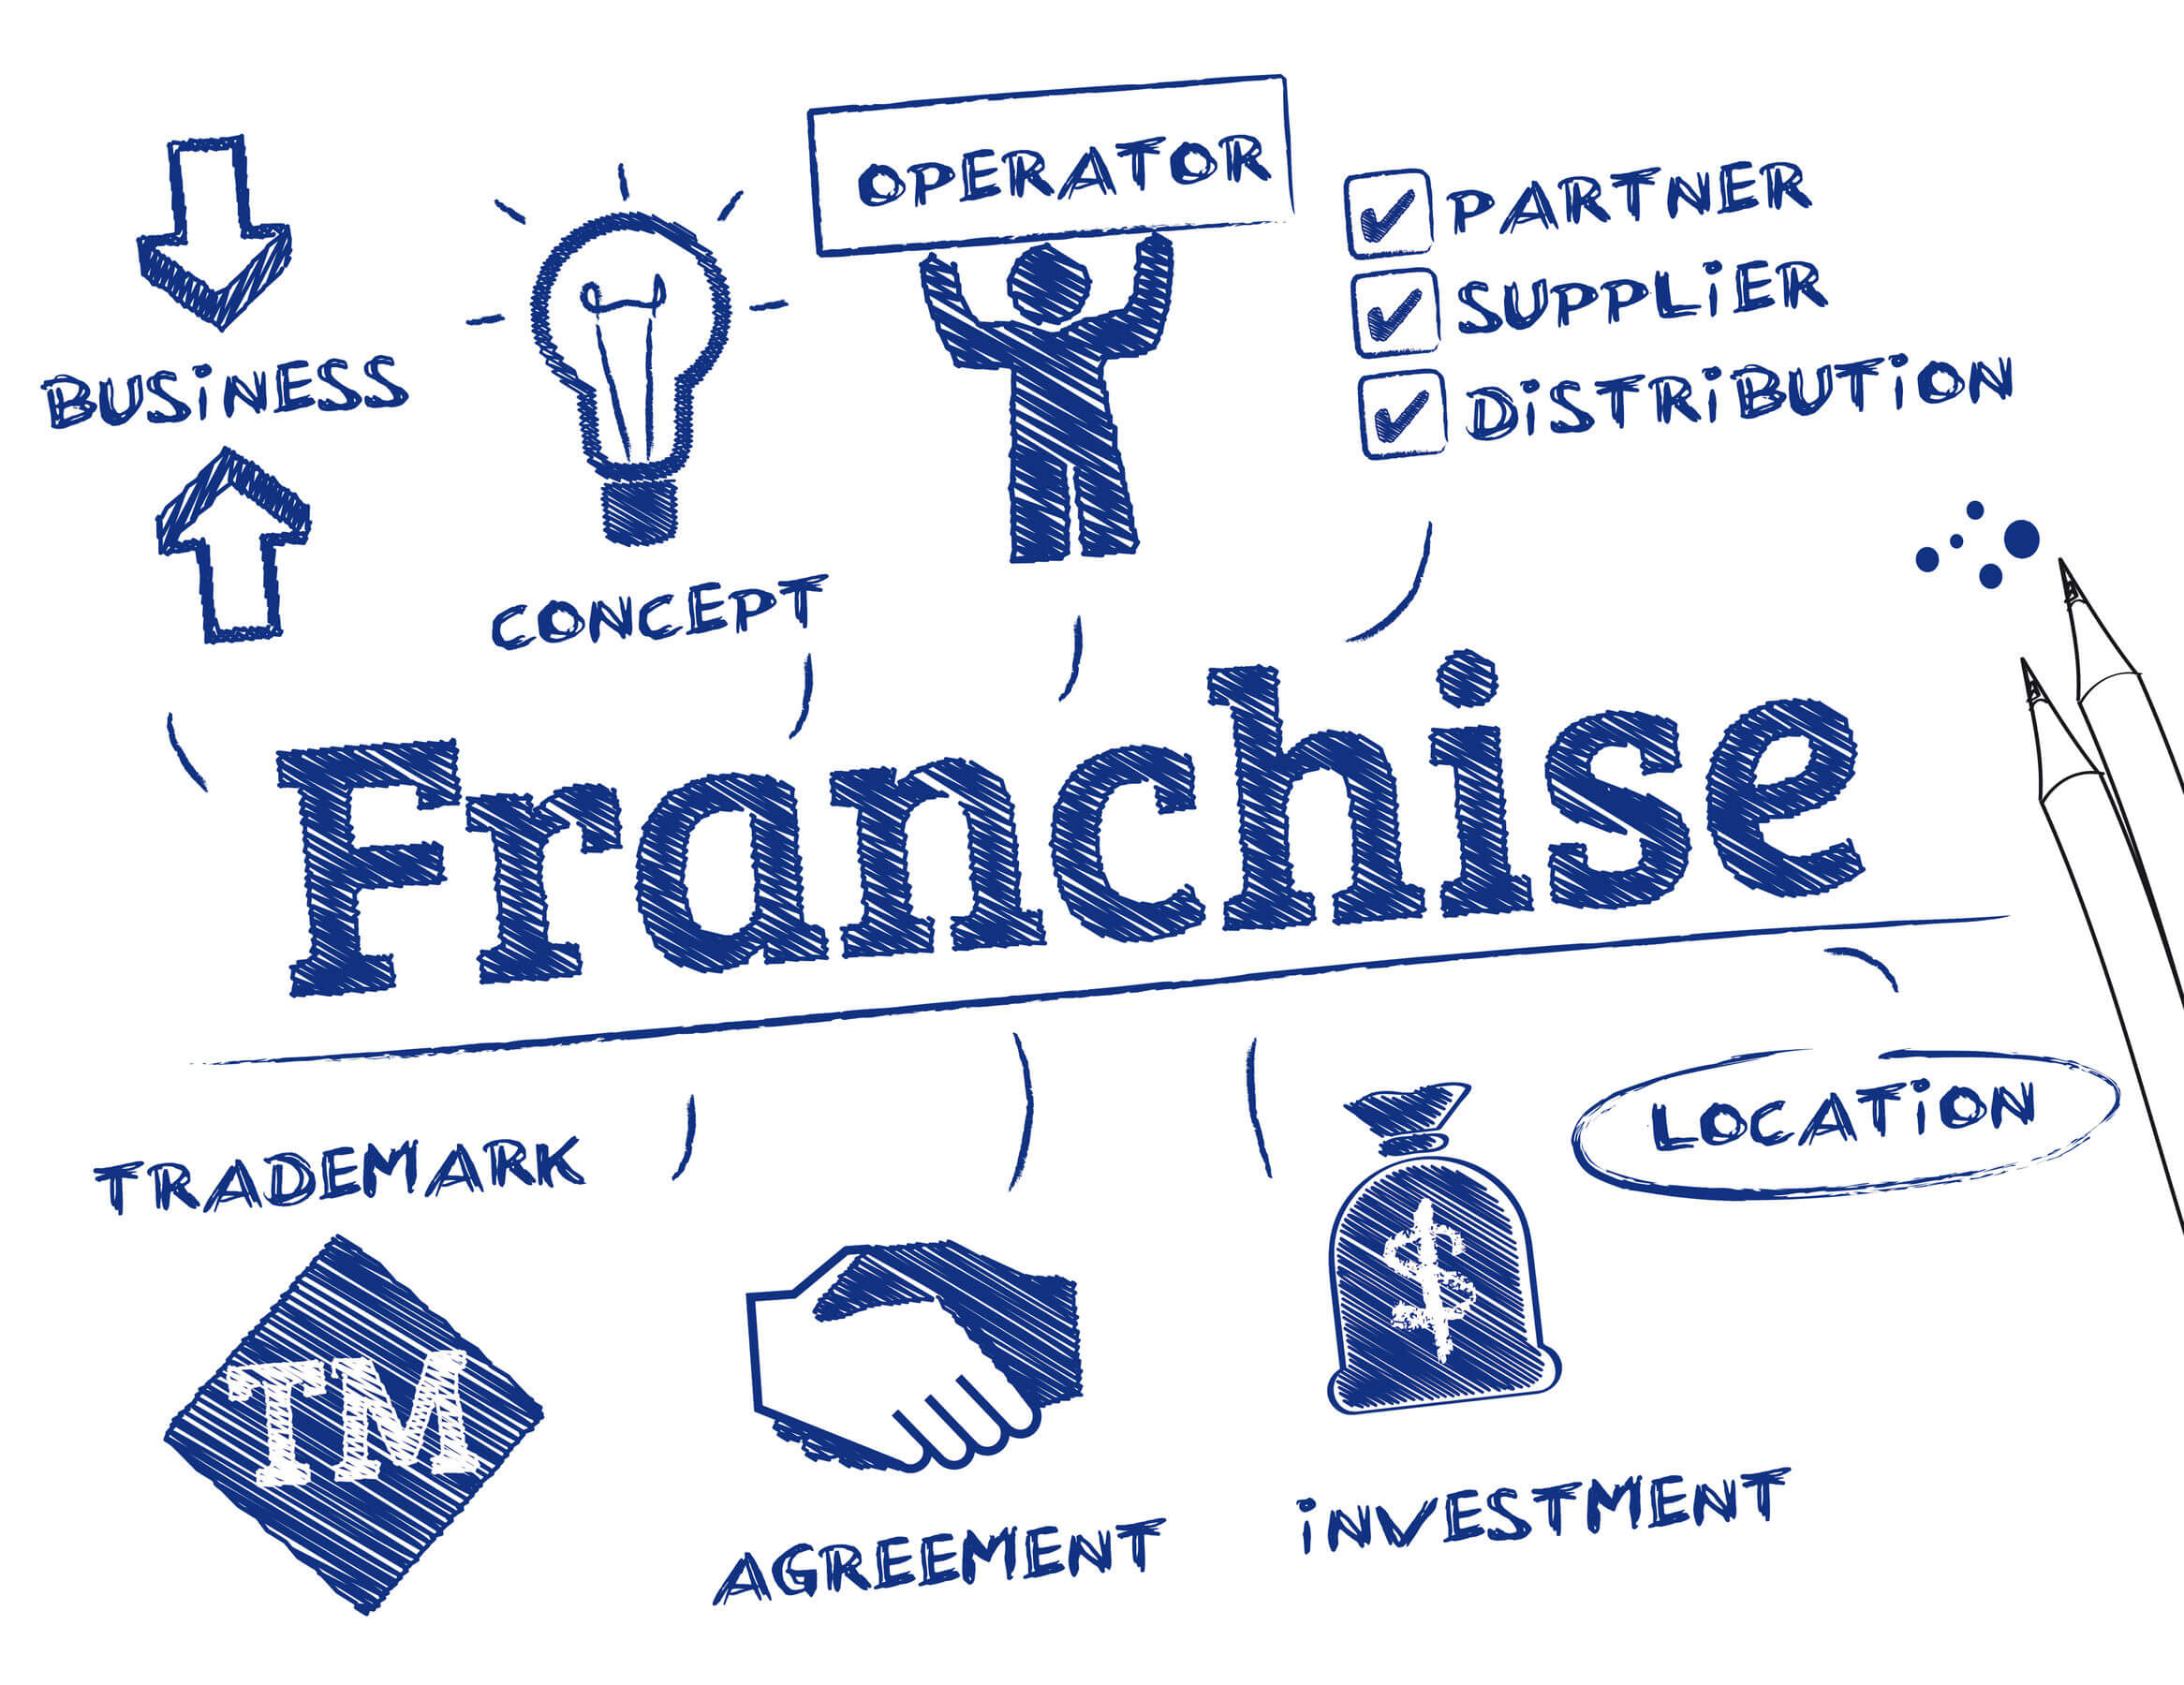 Image of blue graphics and words related to franchising on a white background, representing the need for a lawyer like Xavier W. Staggs who can help you interpret the elements of a franchise agreement.